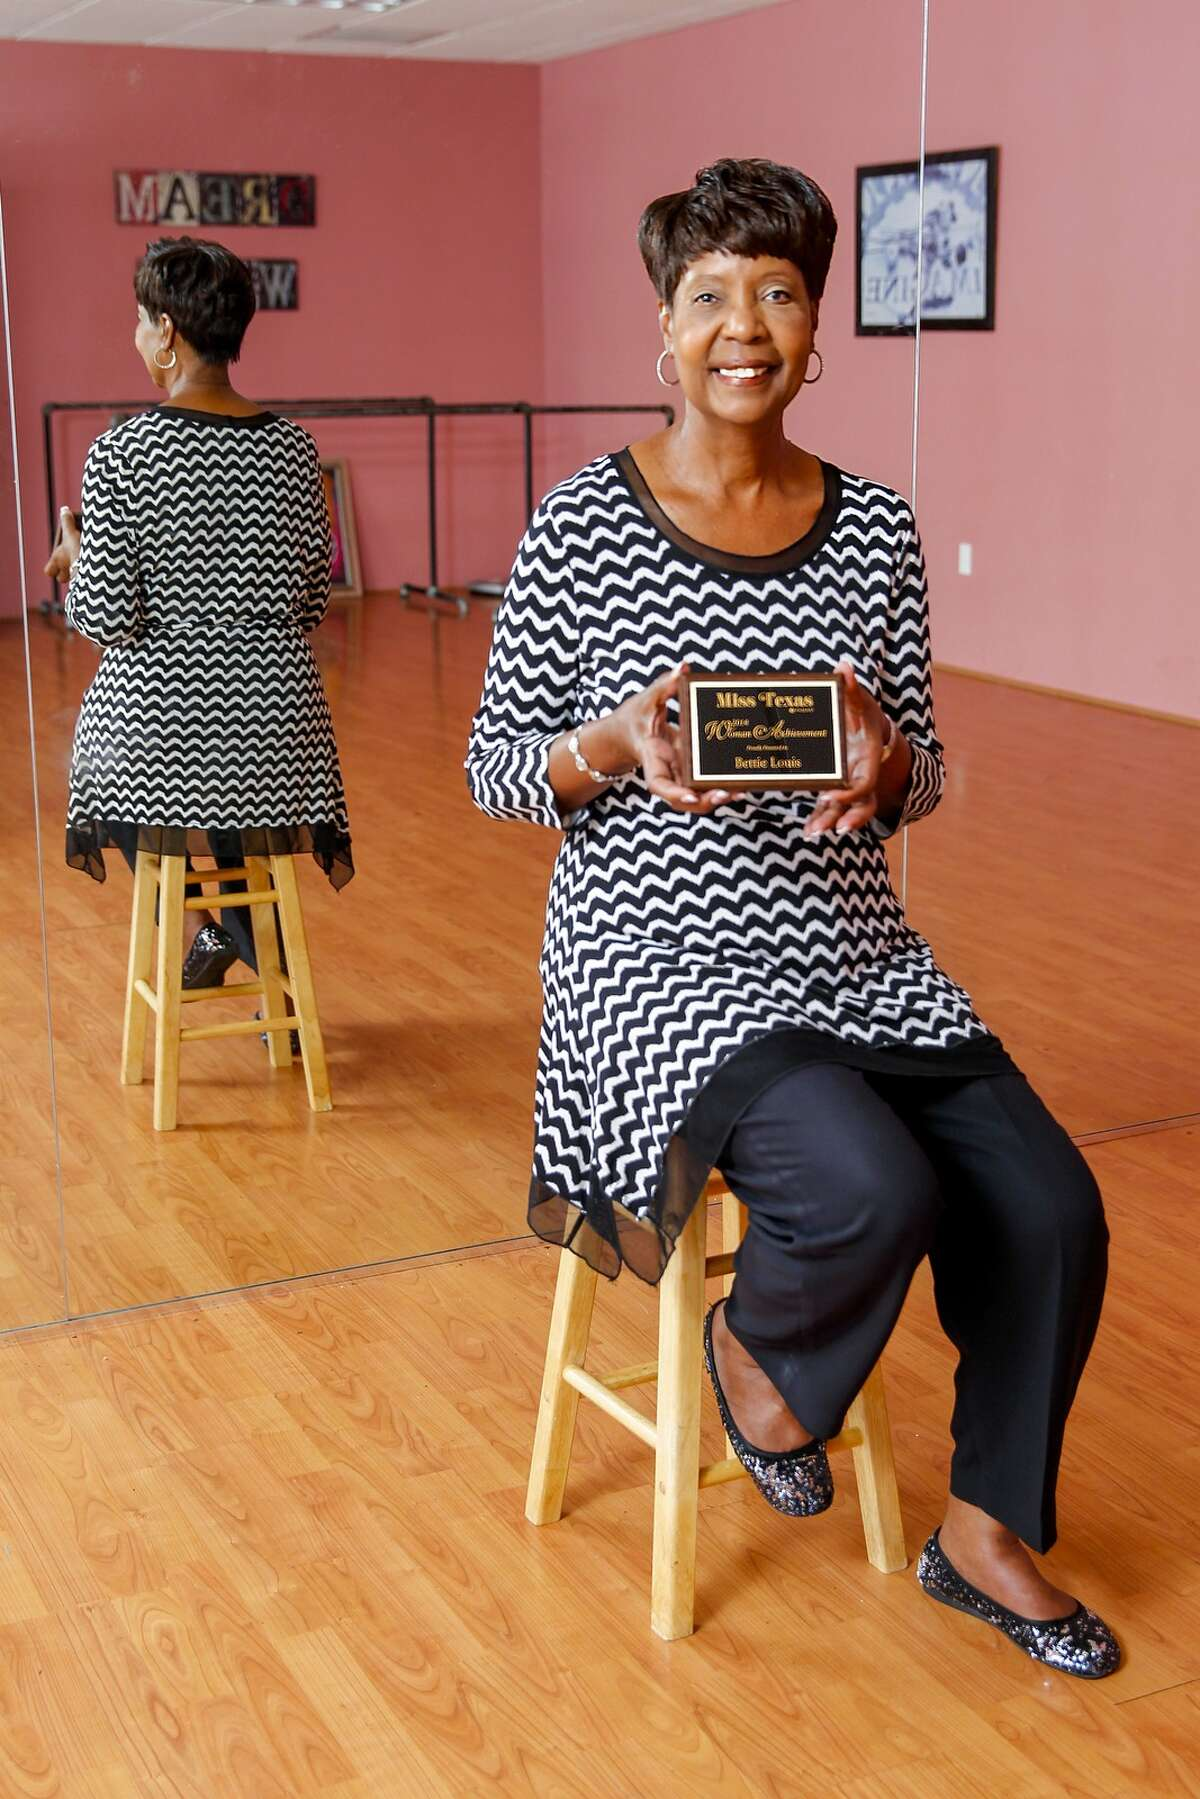 Bettie Louis of Pearland displays the Miss Texas Pageant Woman of Achievement Award for 2014 at Sheila Milner's dance studio, Dance Zone. Milner is Louis' daughter.